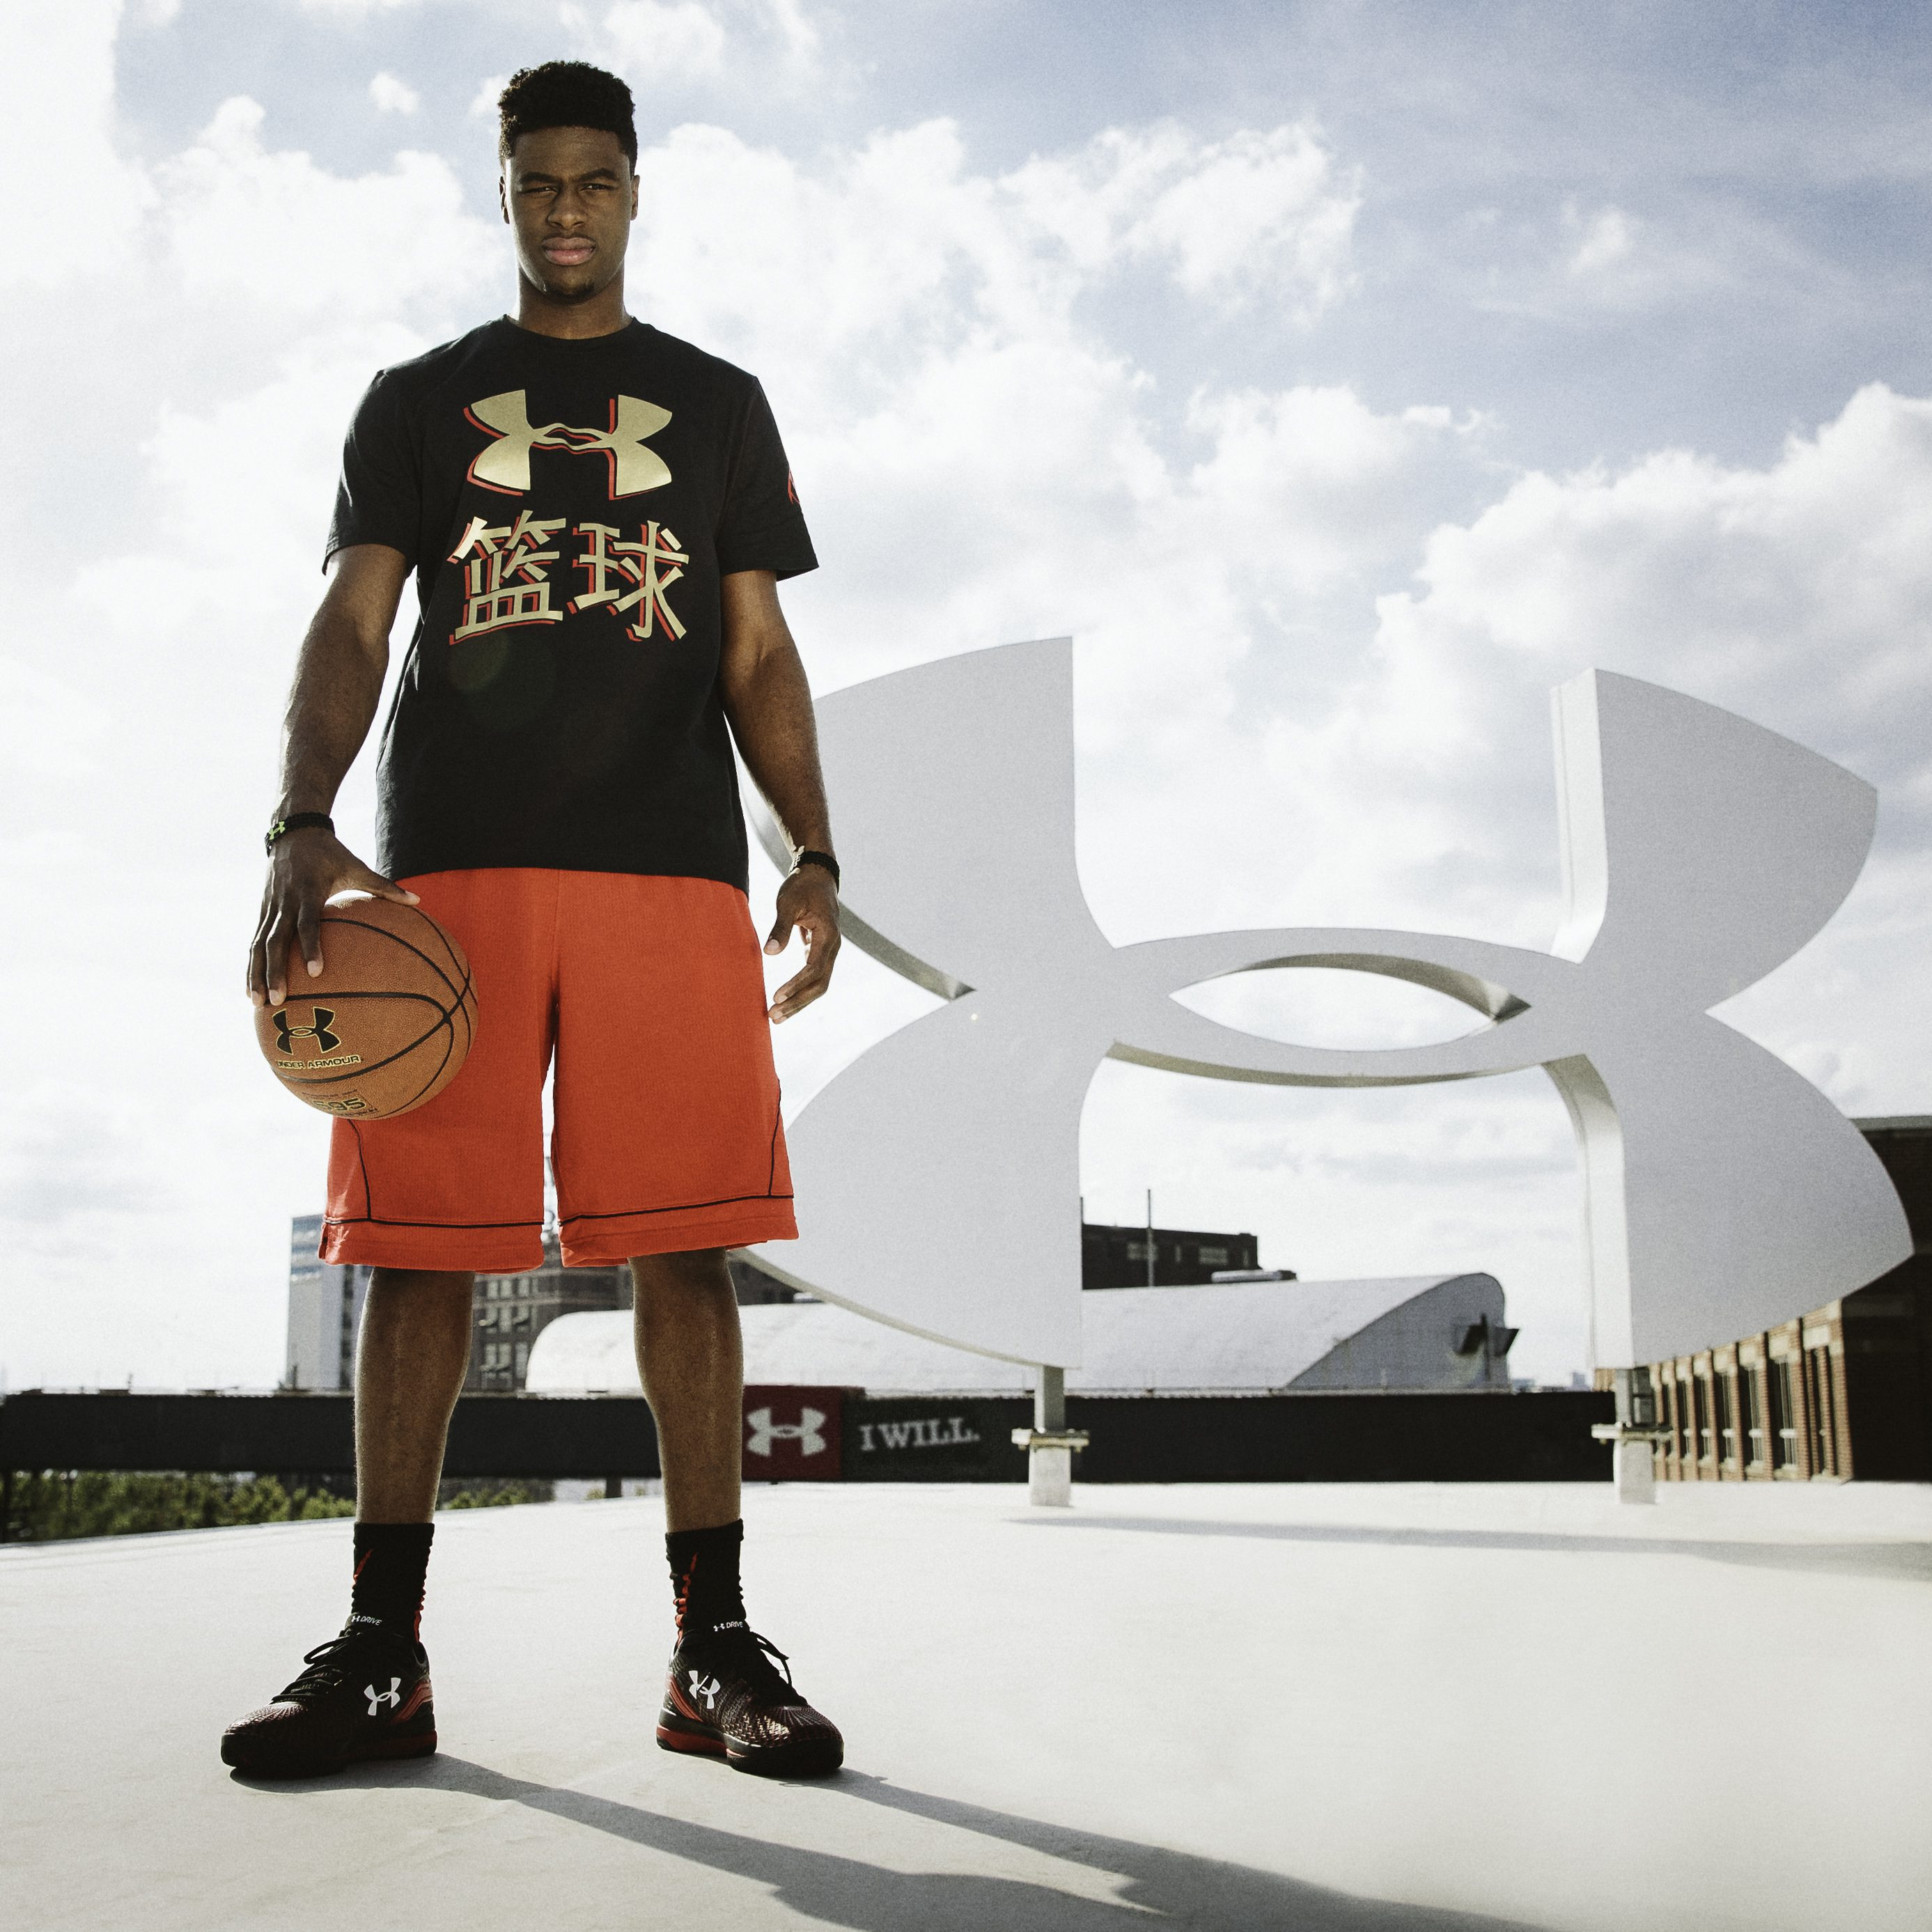 565b85207d7 NBA Prospect Emmanuel Mudiay Is Now With Under Armour - Hardwood and  Hollywood